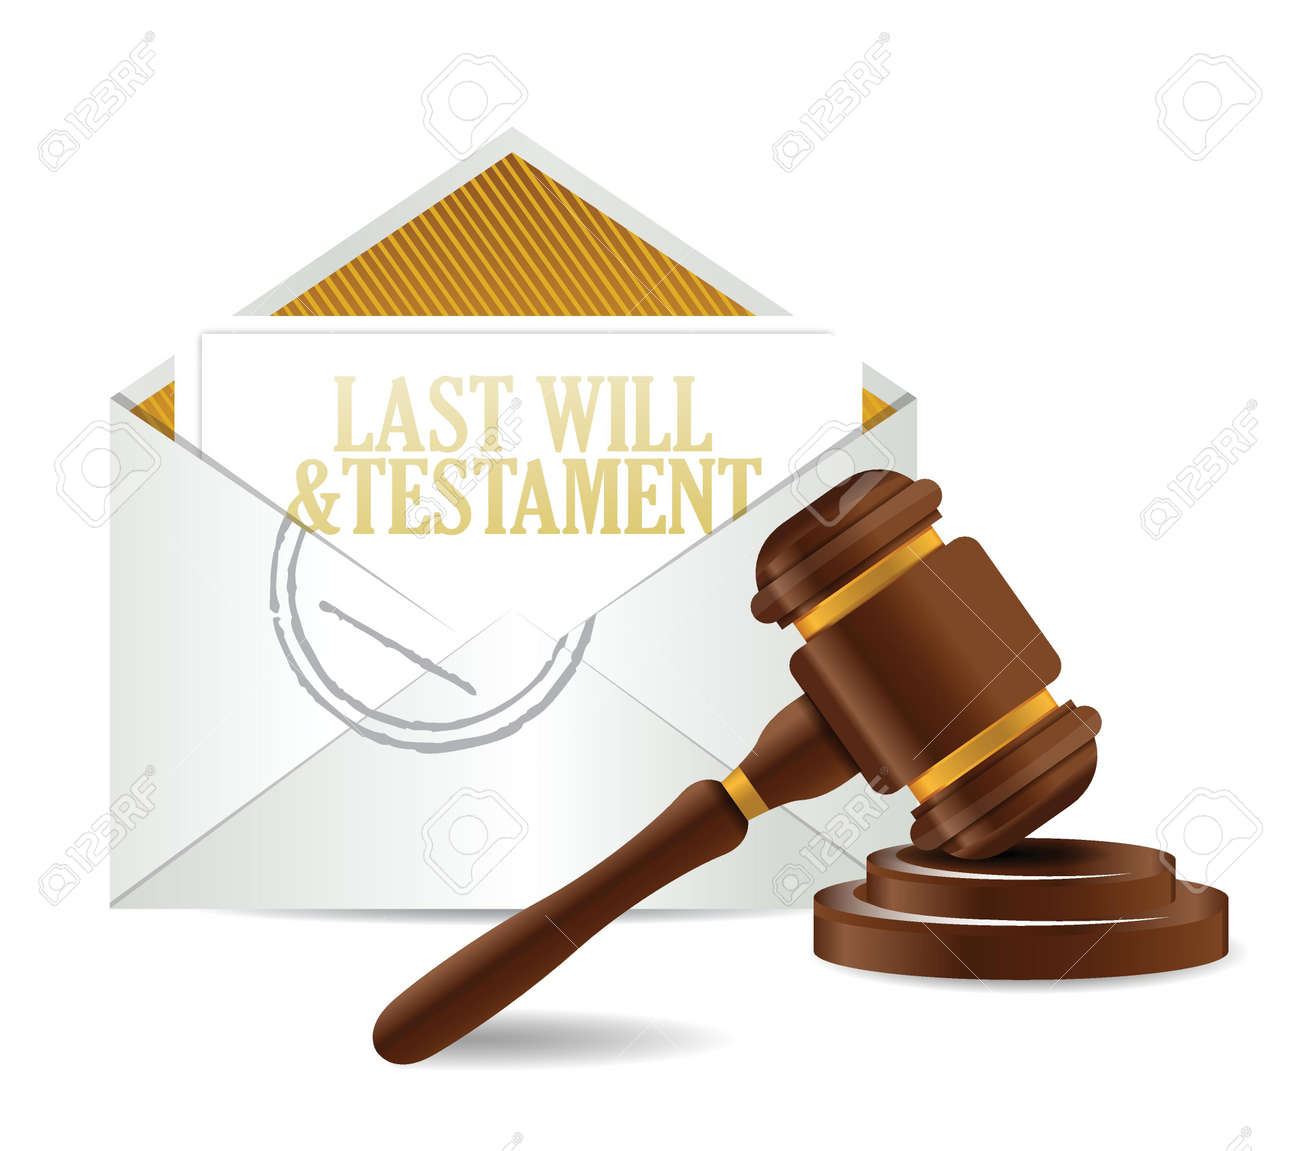 last will and testament document papers and gavel illustration design over a white background - 18593302